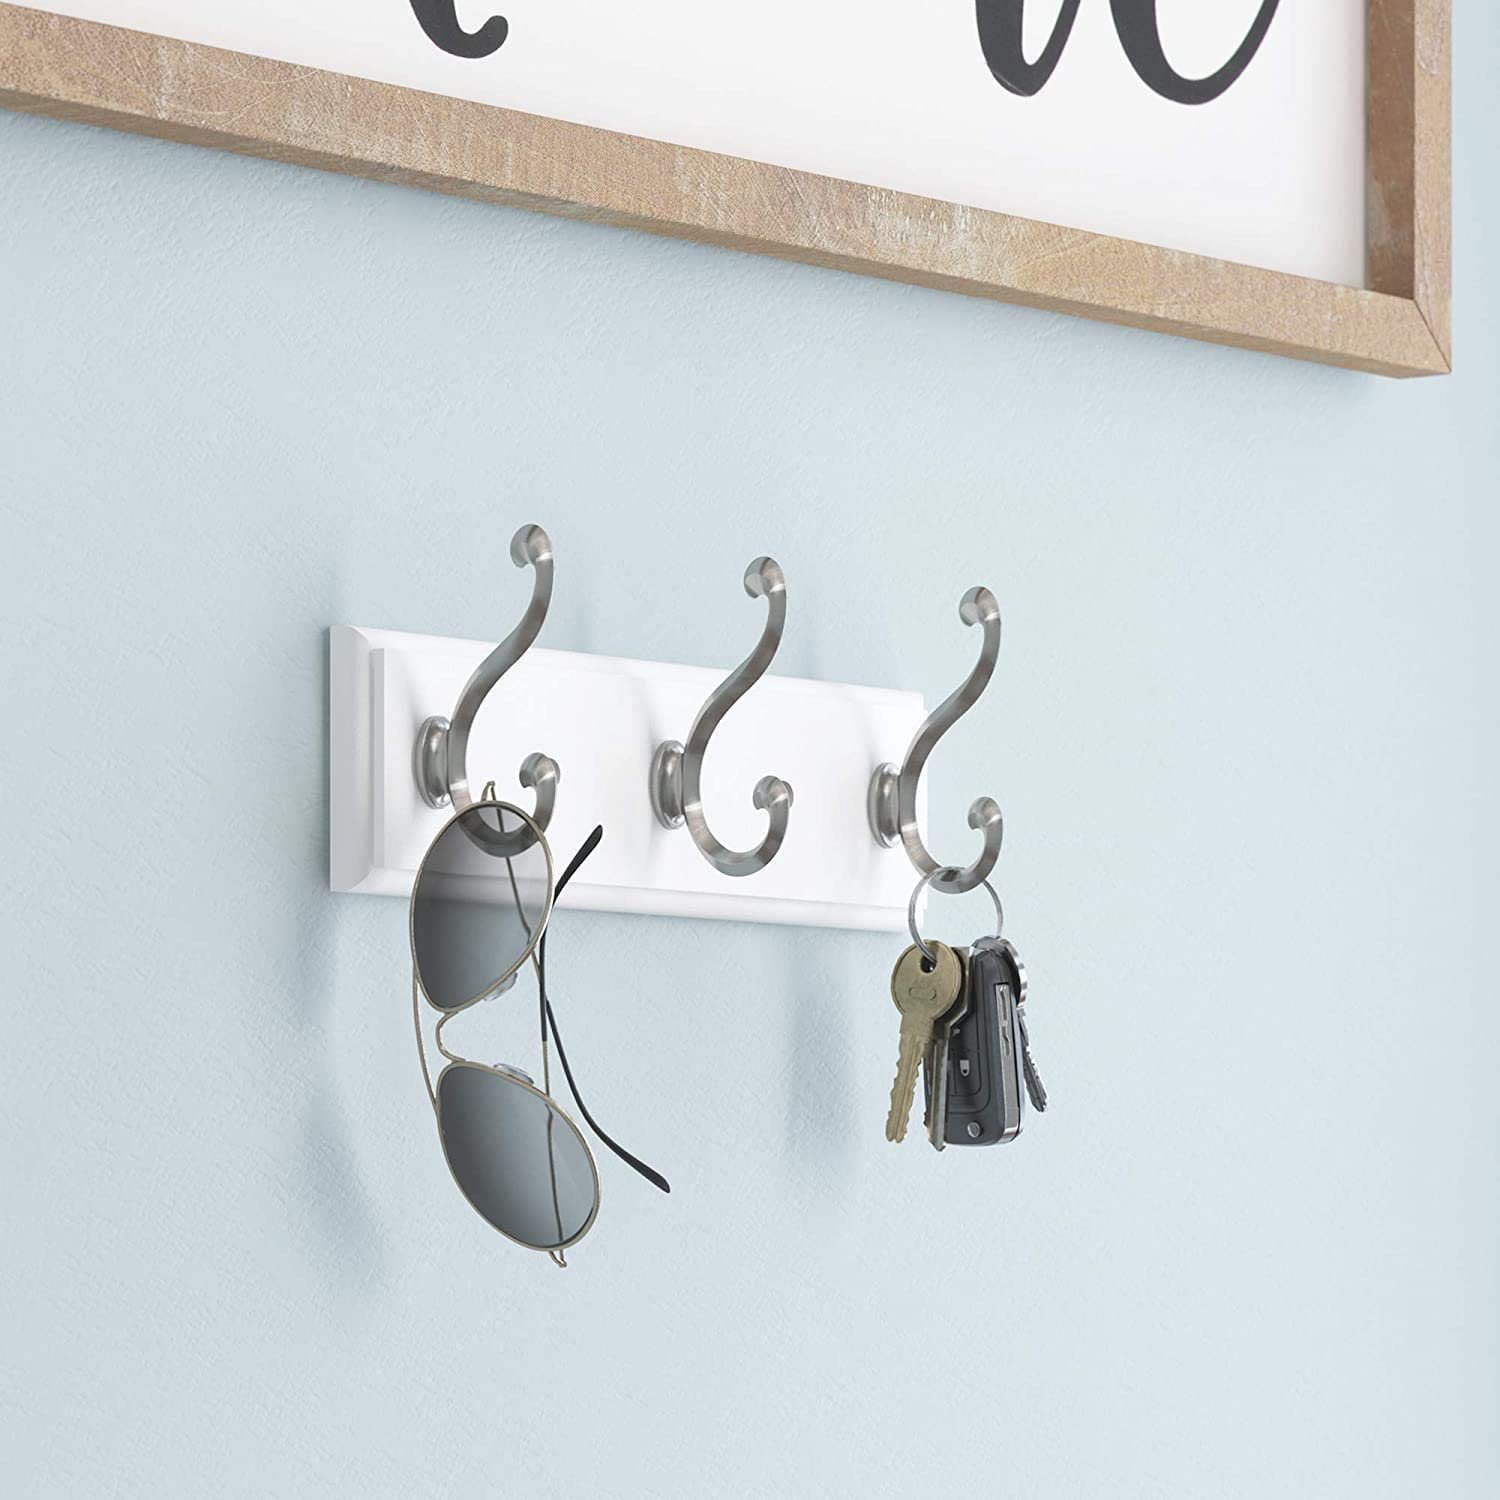 10-Inch Satin Nickel and White Wall Mounted Coat Rack with 3 Decorative Hooks